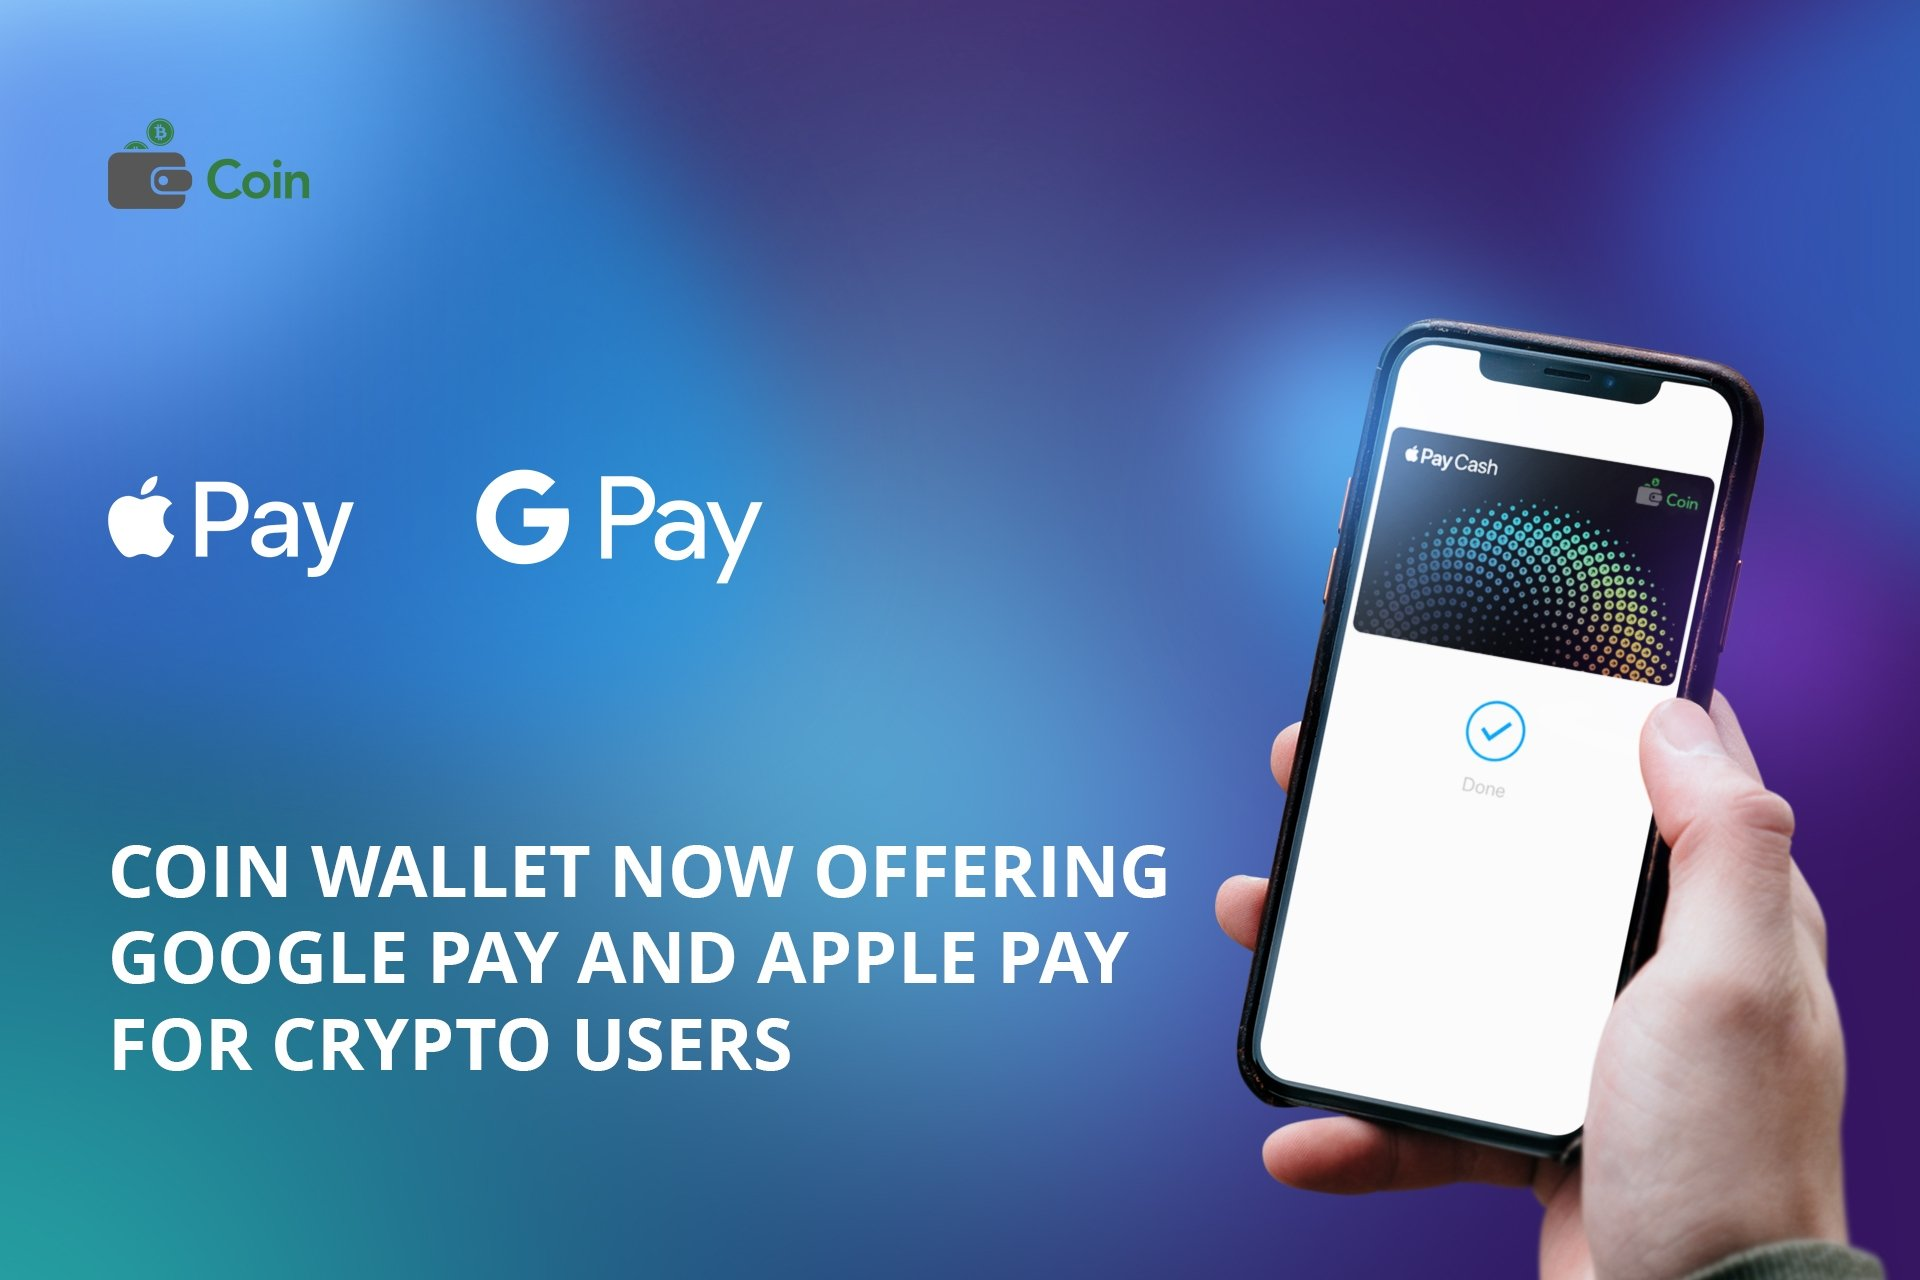 Coin Wallet Now Offering Google Pay and Apple Pay for Crypto Users